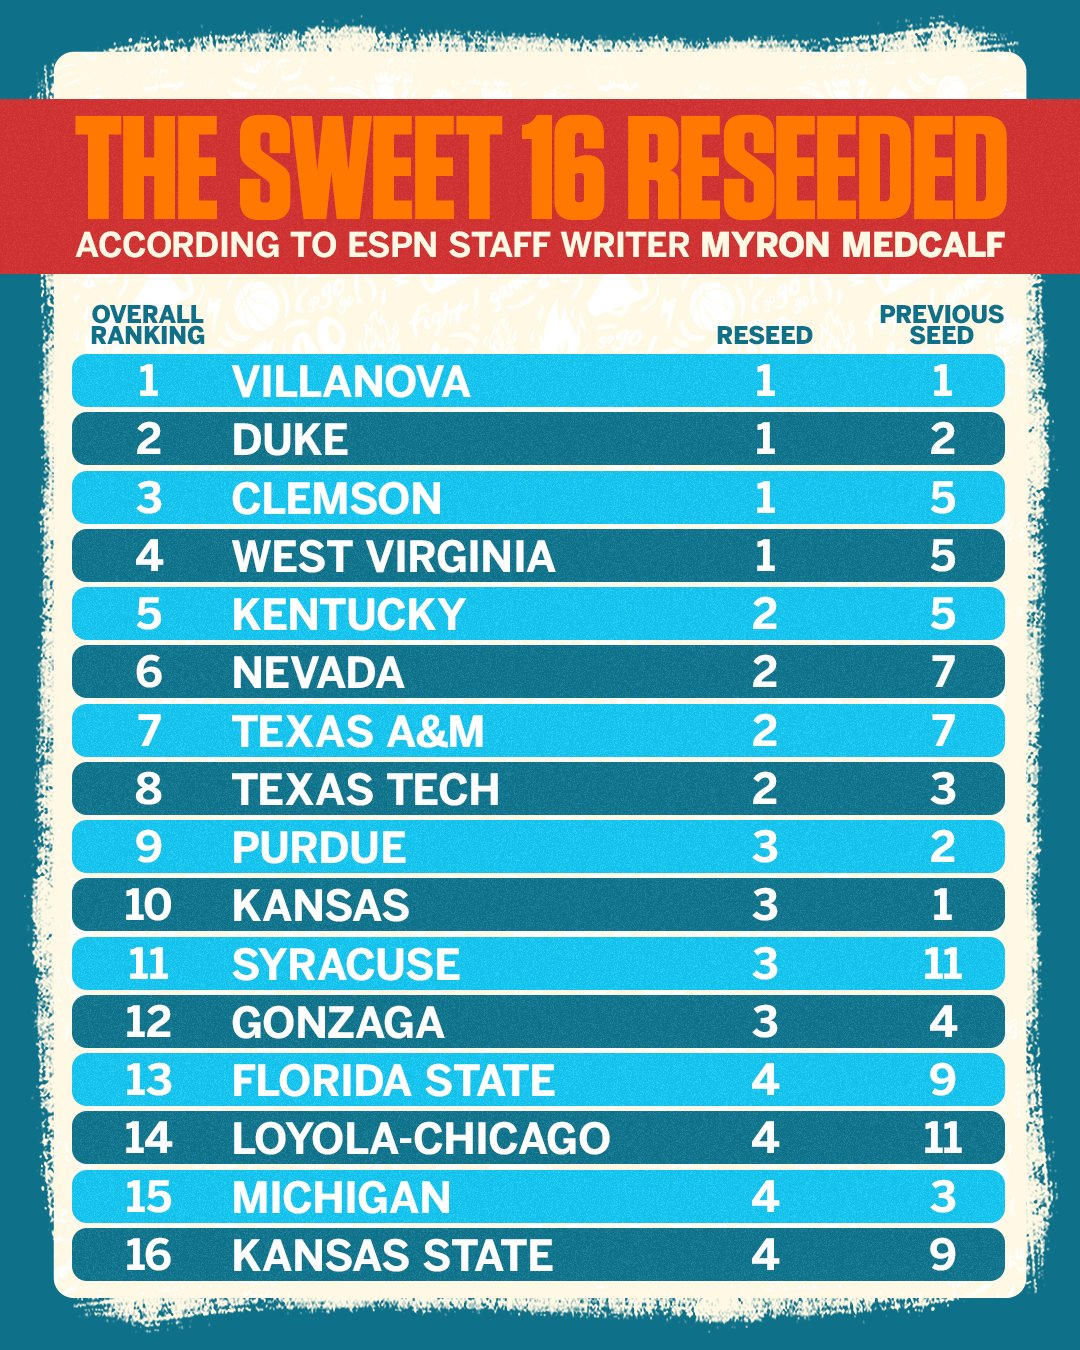 With so many top seeds eliminated, it was time to reseed the Sweet 16. https://t.co/1IJaBGPY7F